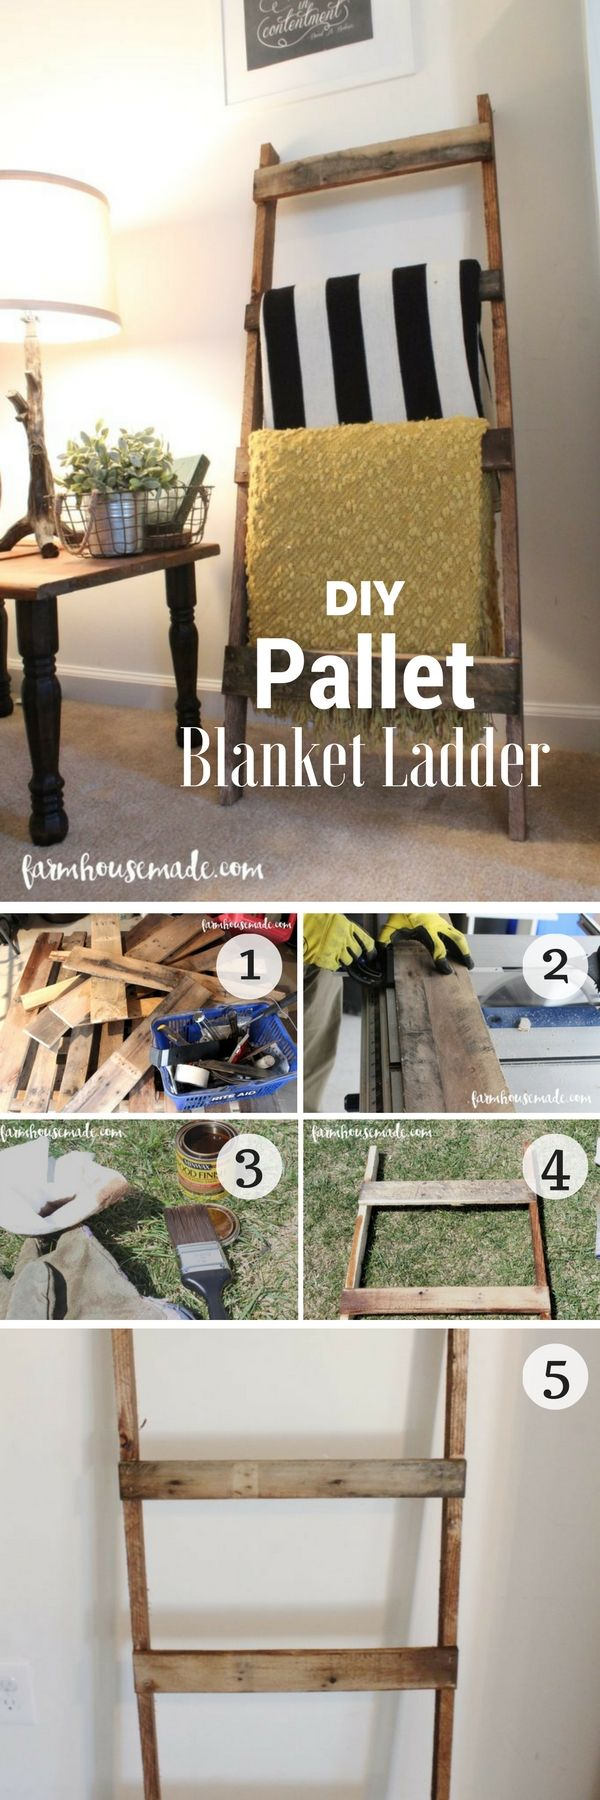 My Shed Plans - Check out how to build an easy DIY Pallet Blanket Ladder  from pallet wood Industry Standard Design - Now You Can Build ANY Shed In A  Weekend ...